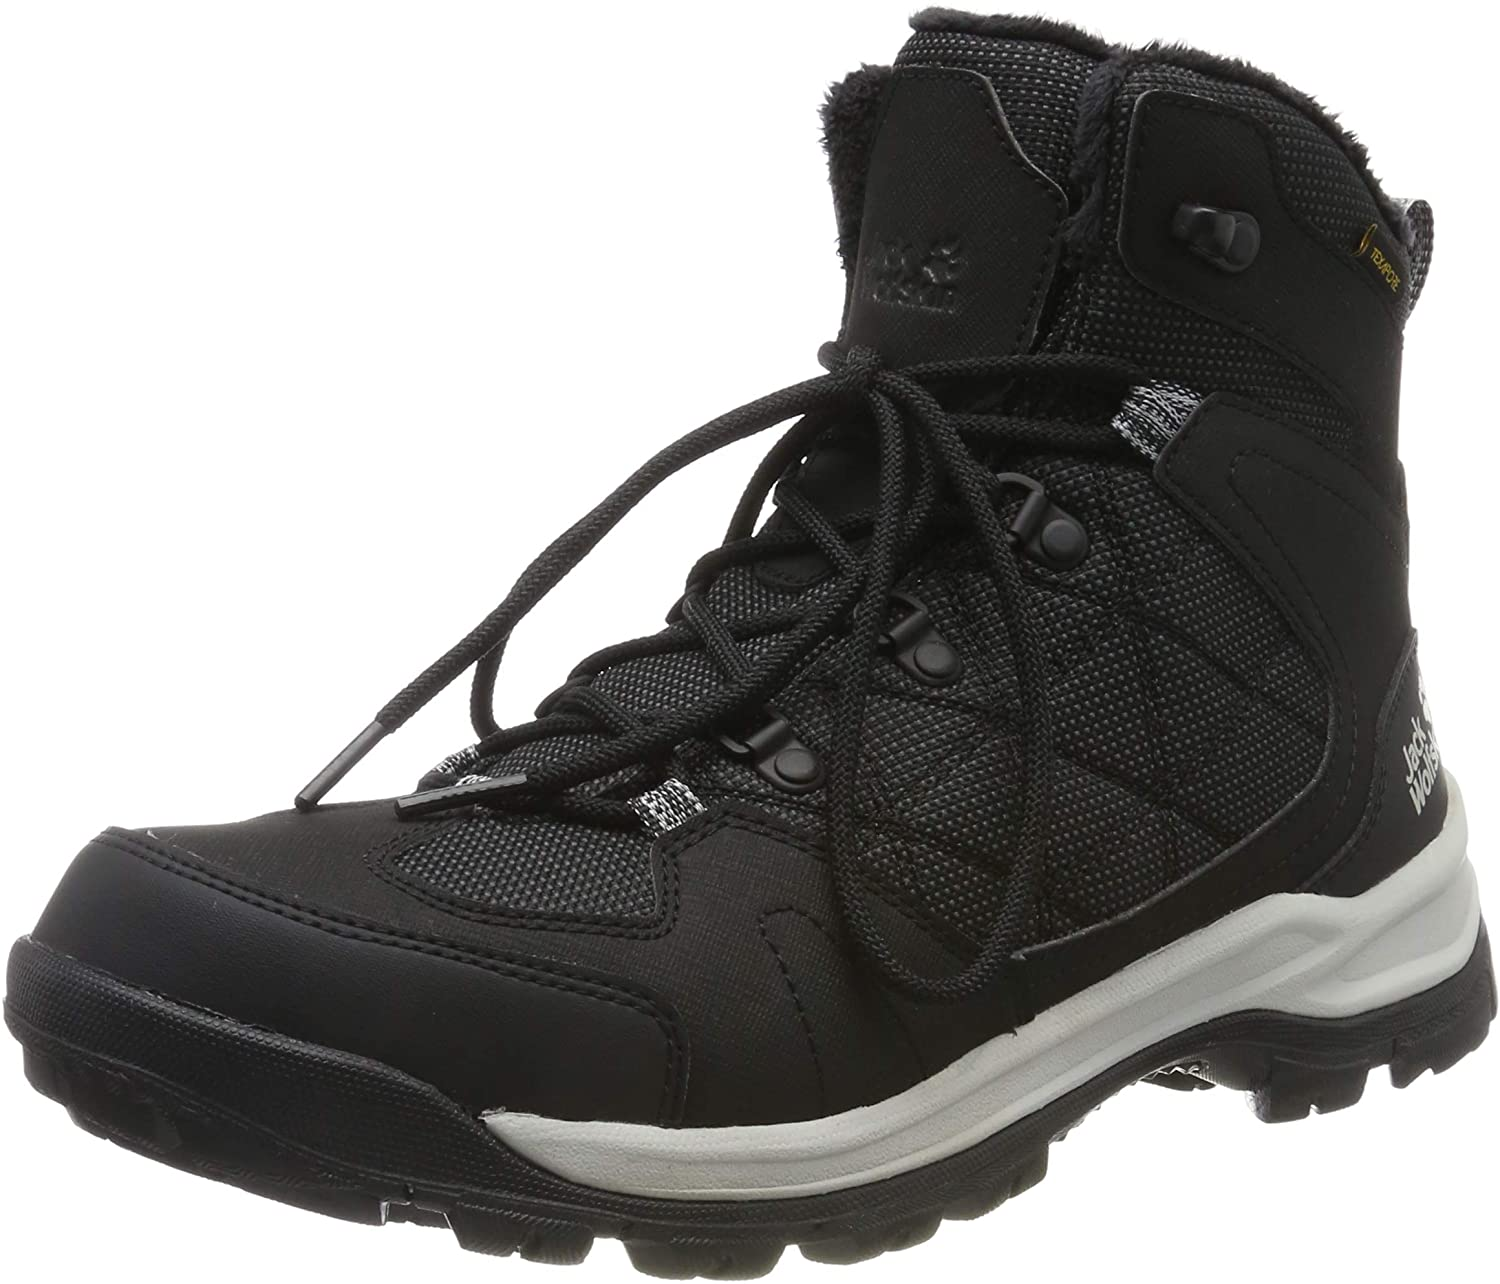 Jack Wolfskin Men's High Rise Hiking Shoes